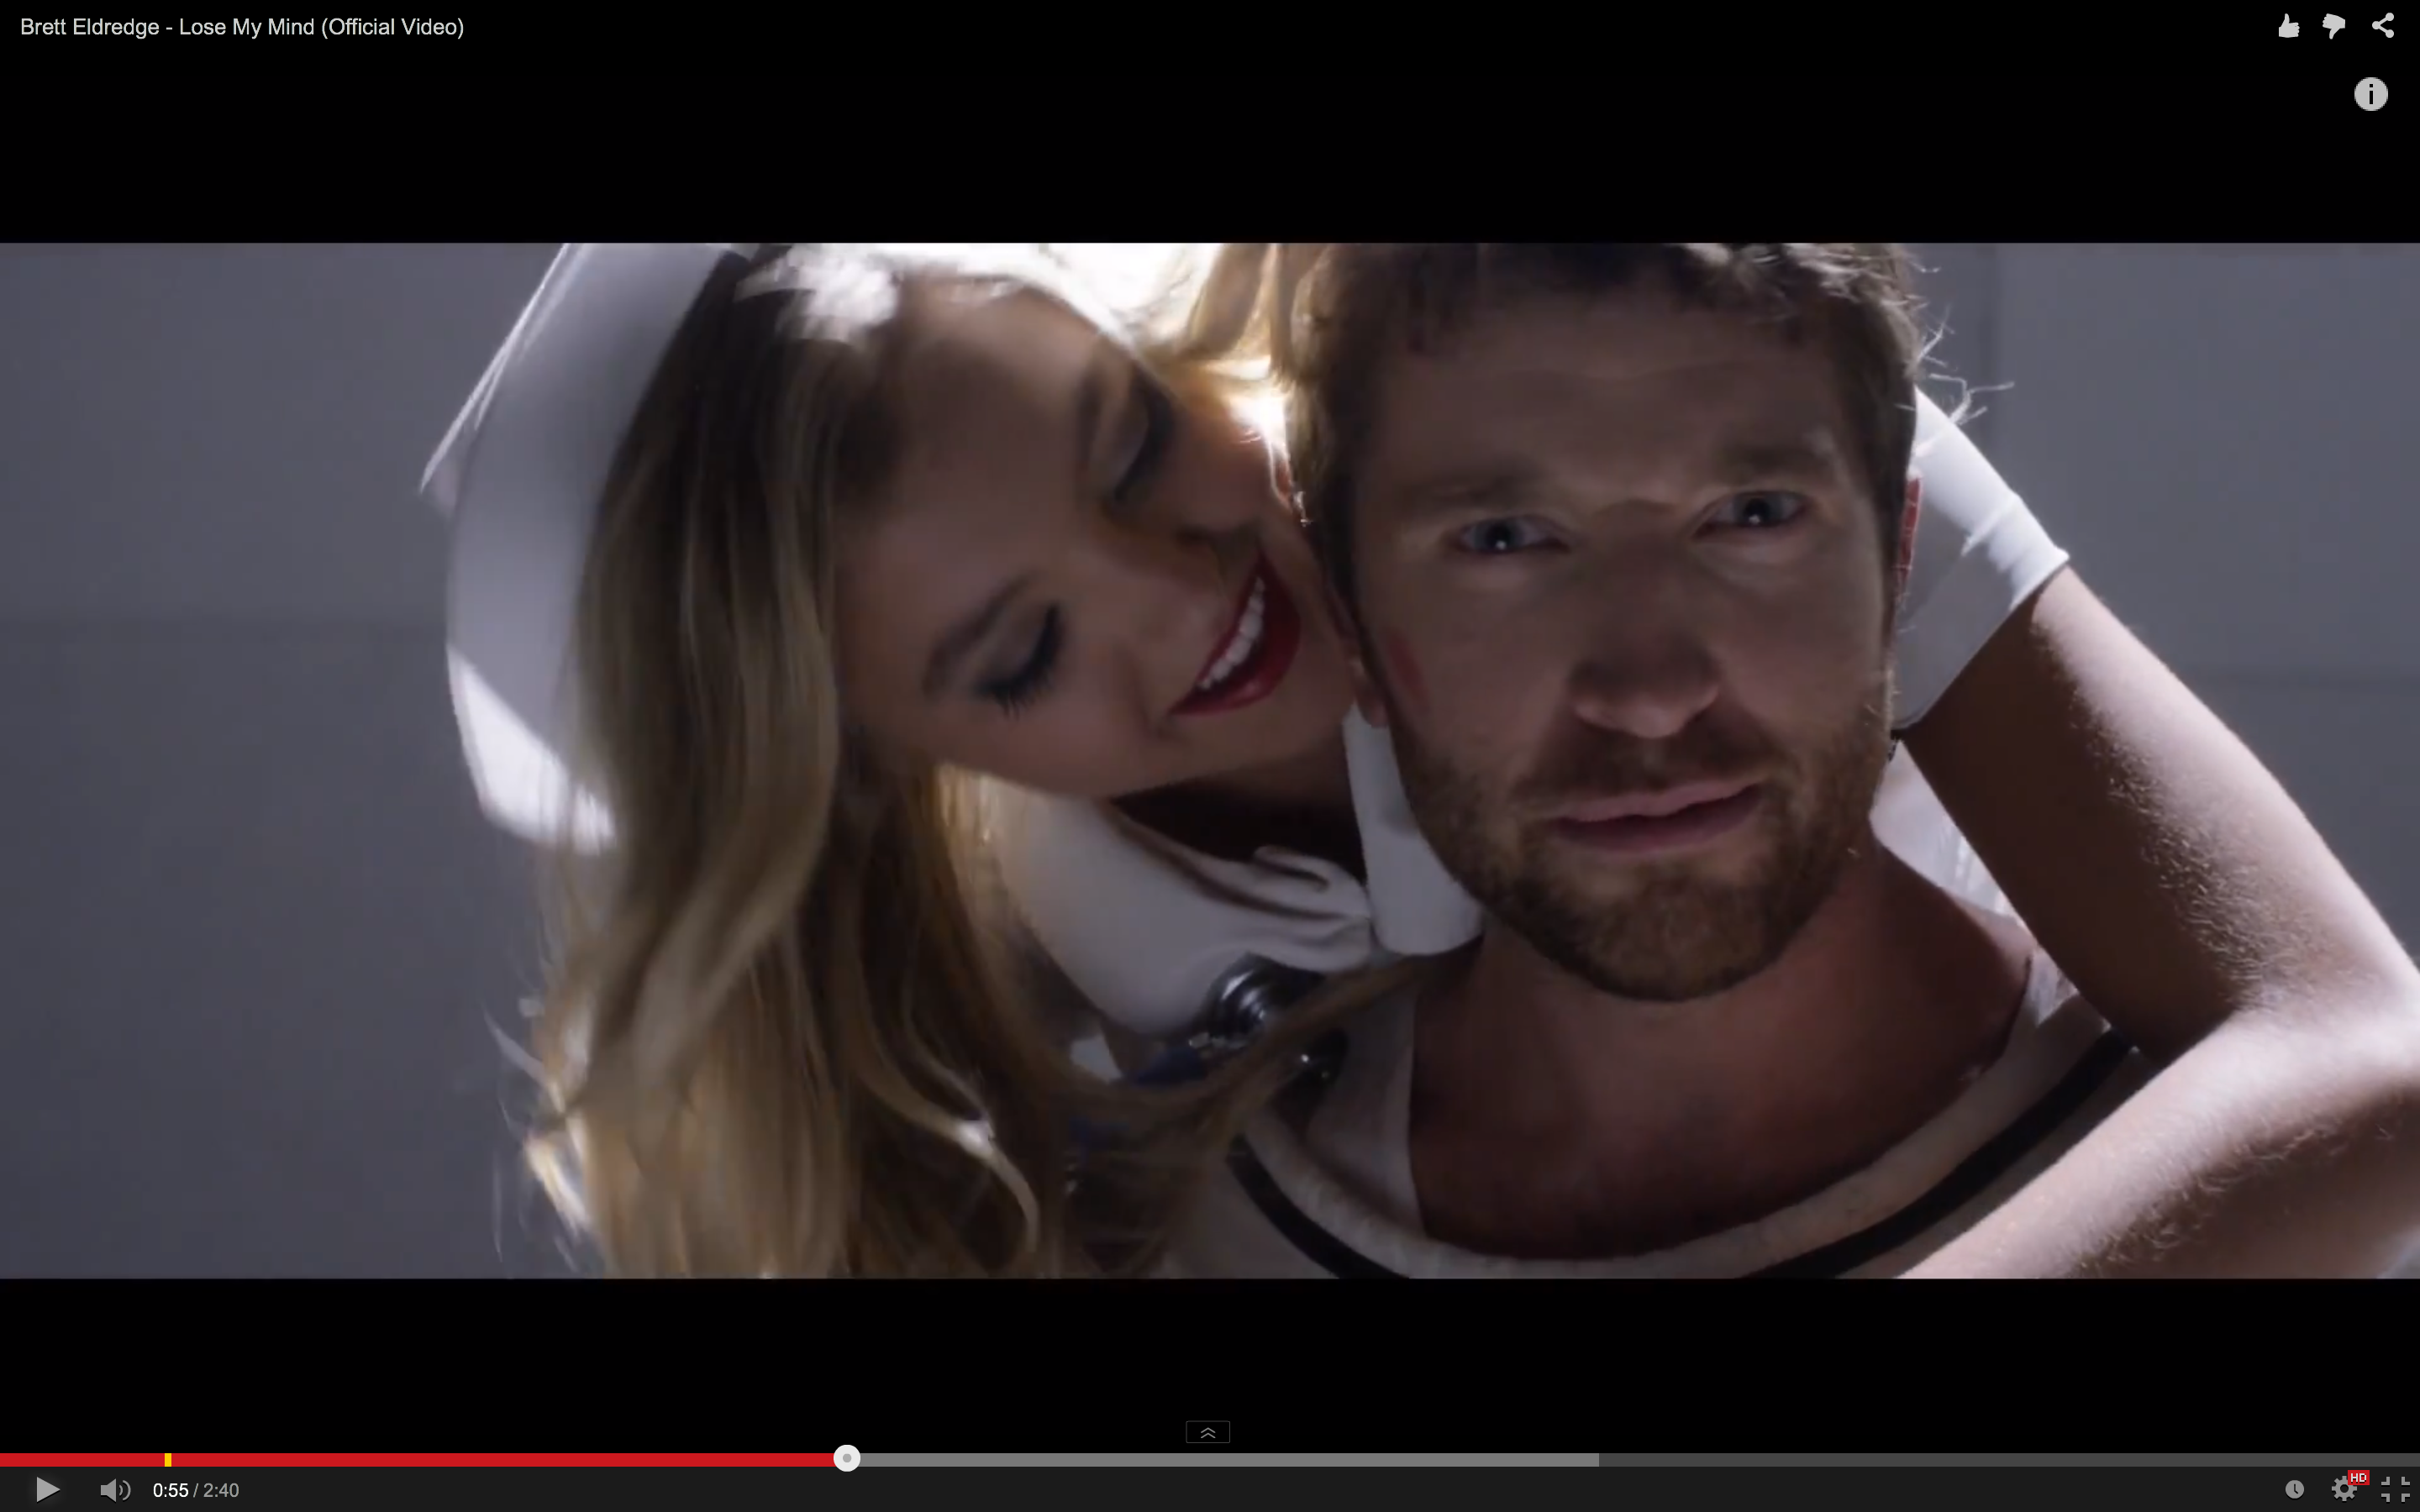 See Brett Eldredge Don A Straitjacket In Lose My Mind